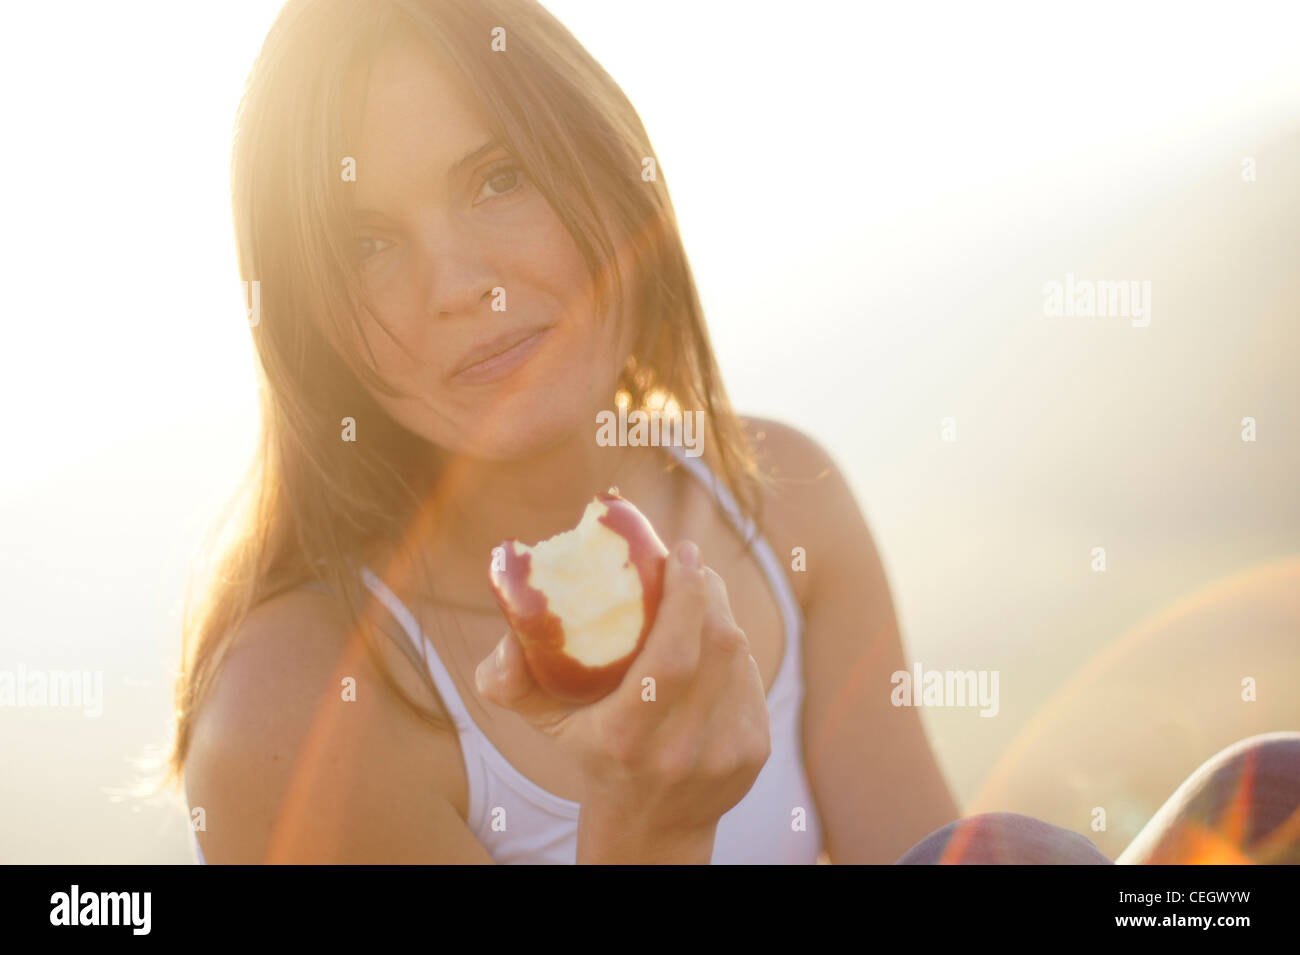 Beautiful young woman eating a juicy red apple in the beautiful golden light of the setting sun - Stock Image